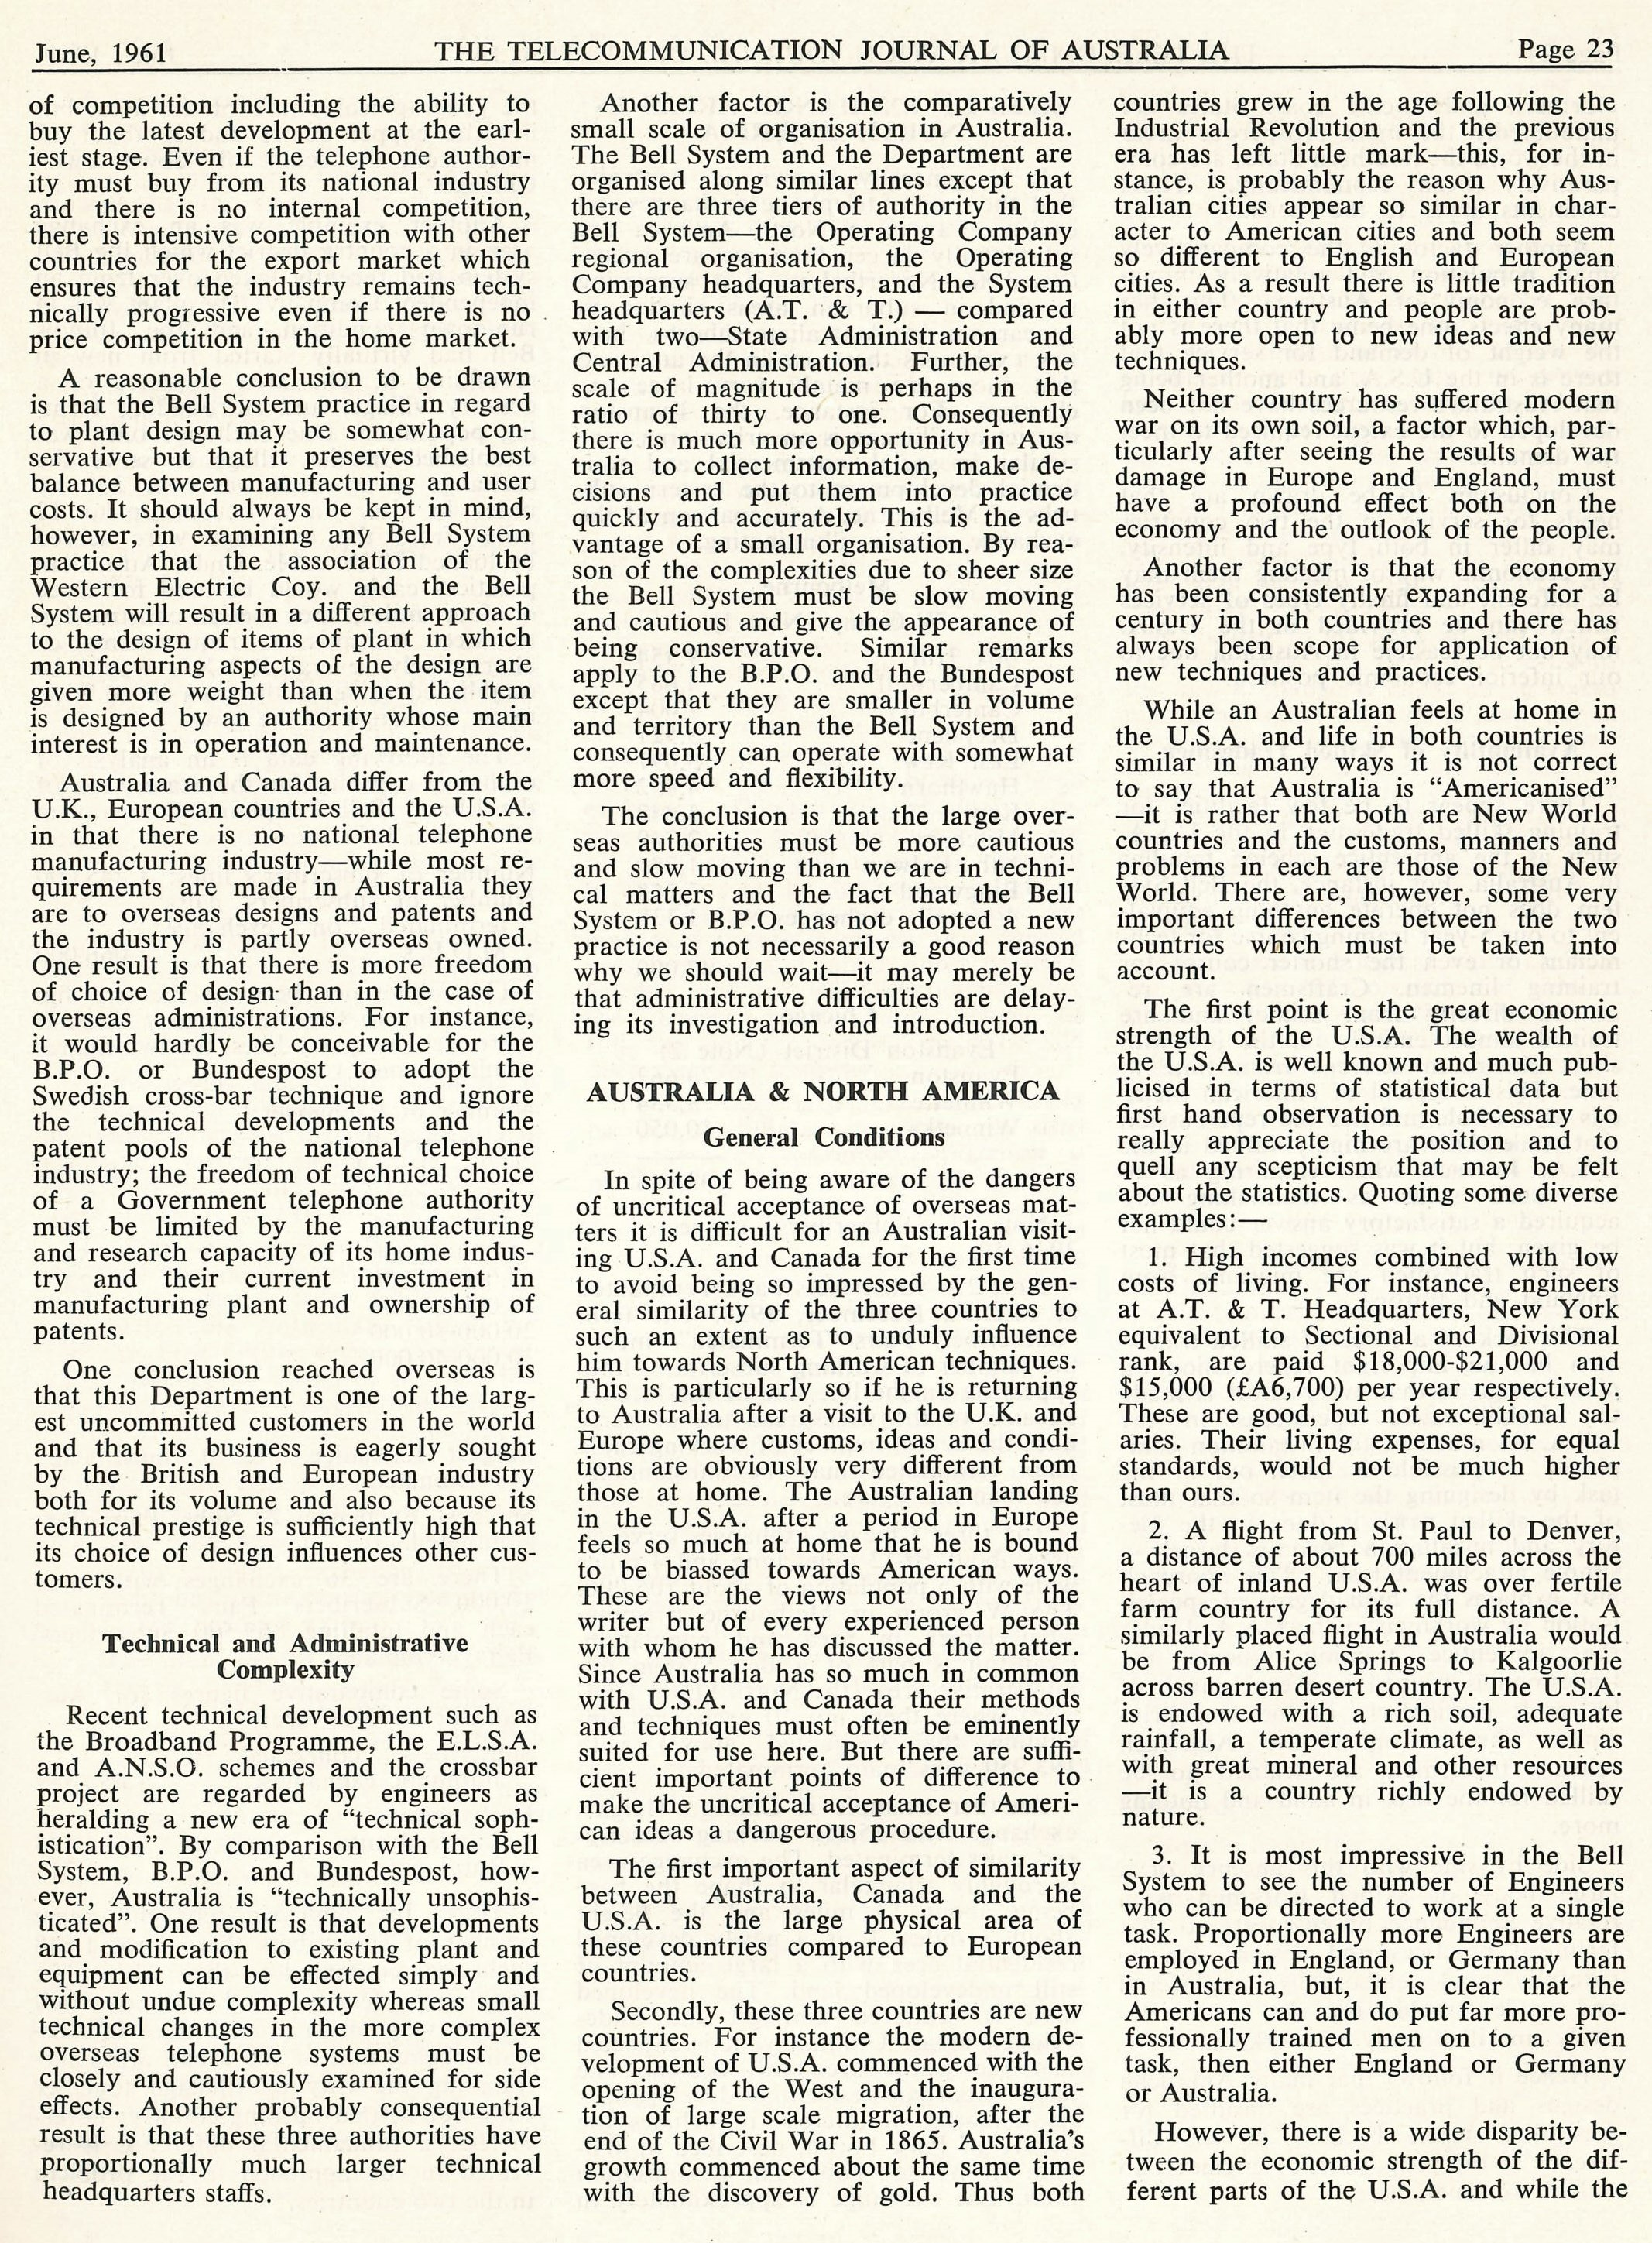 Page 5 of historic paper